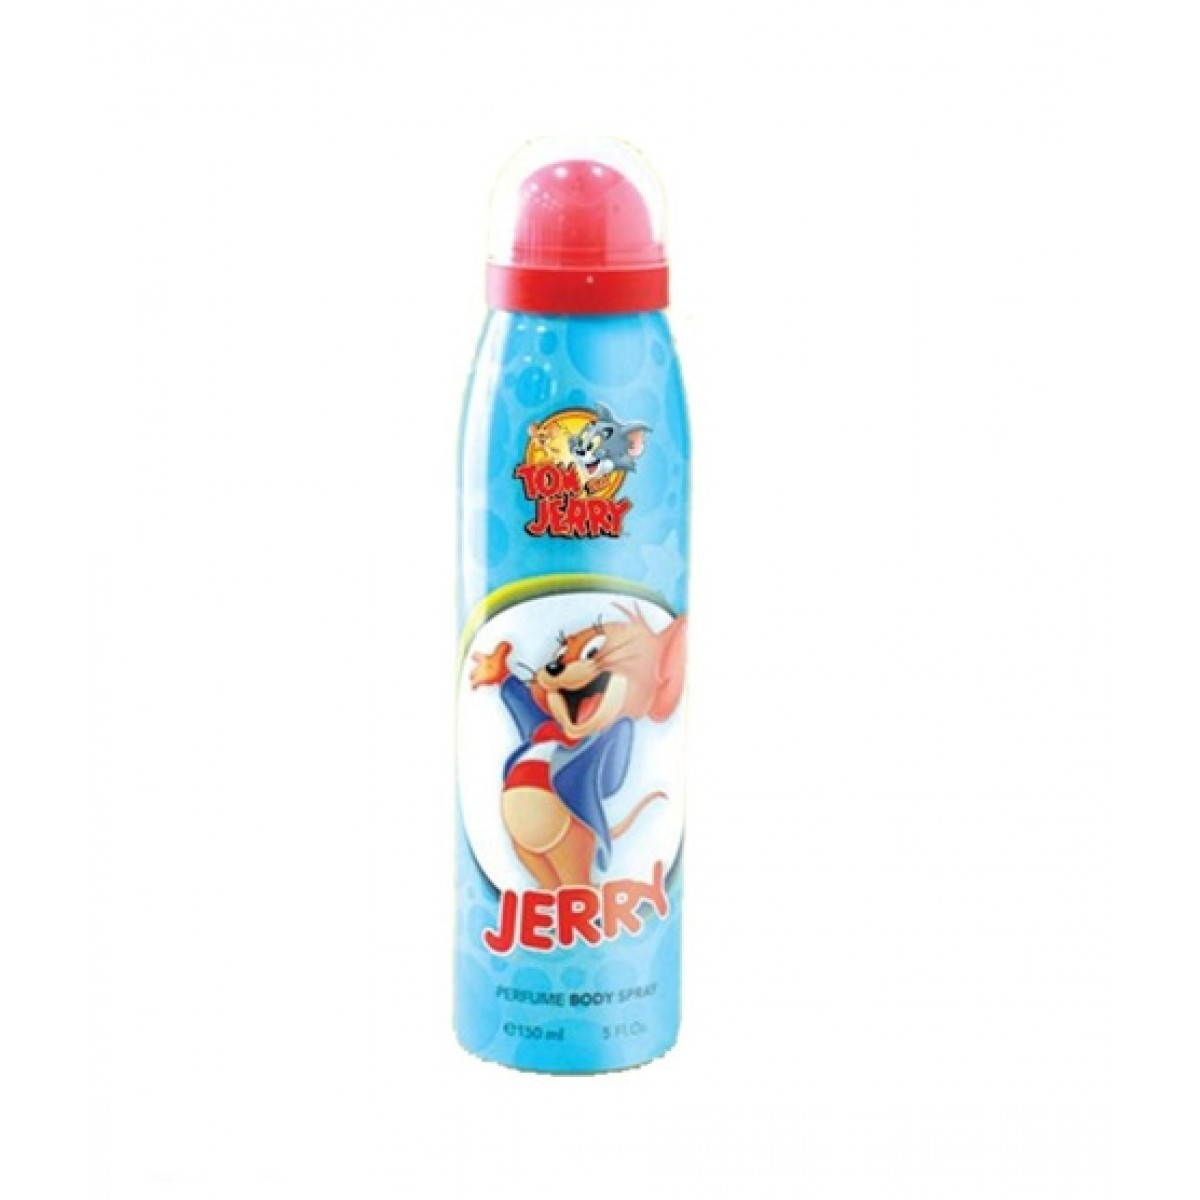 Warner Bros Jerry Body Spray For Boy 150ml